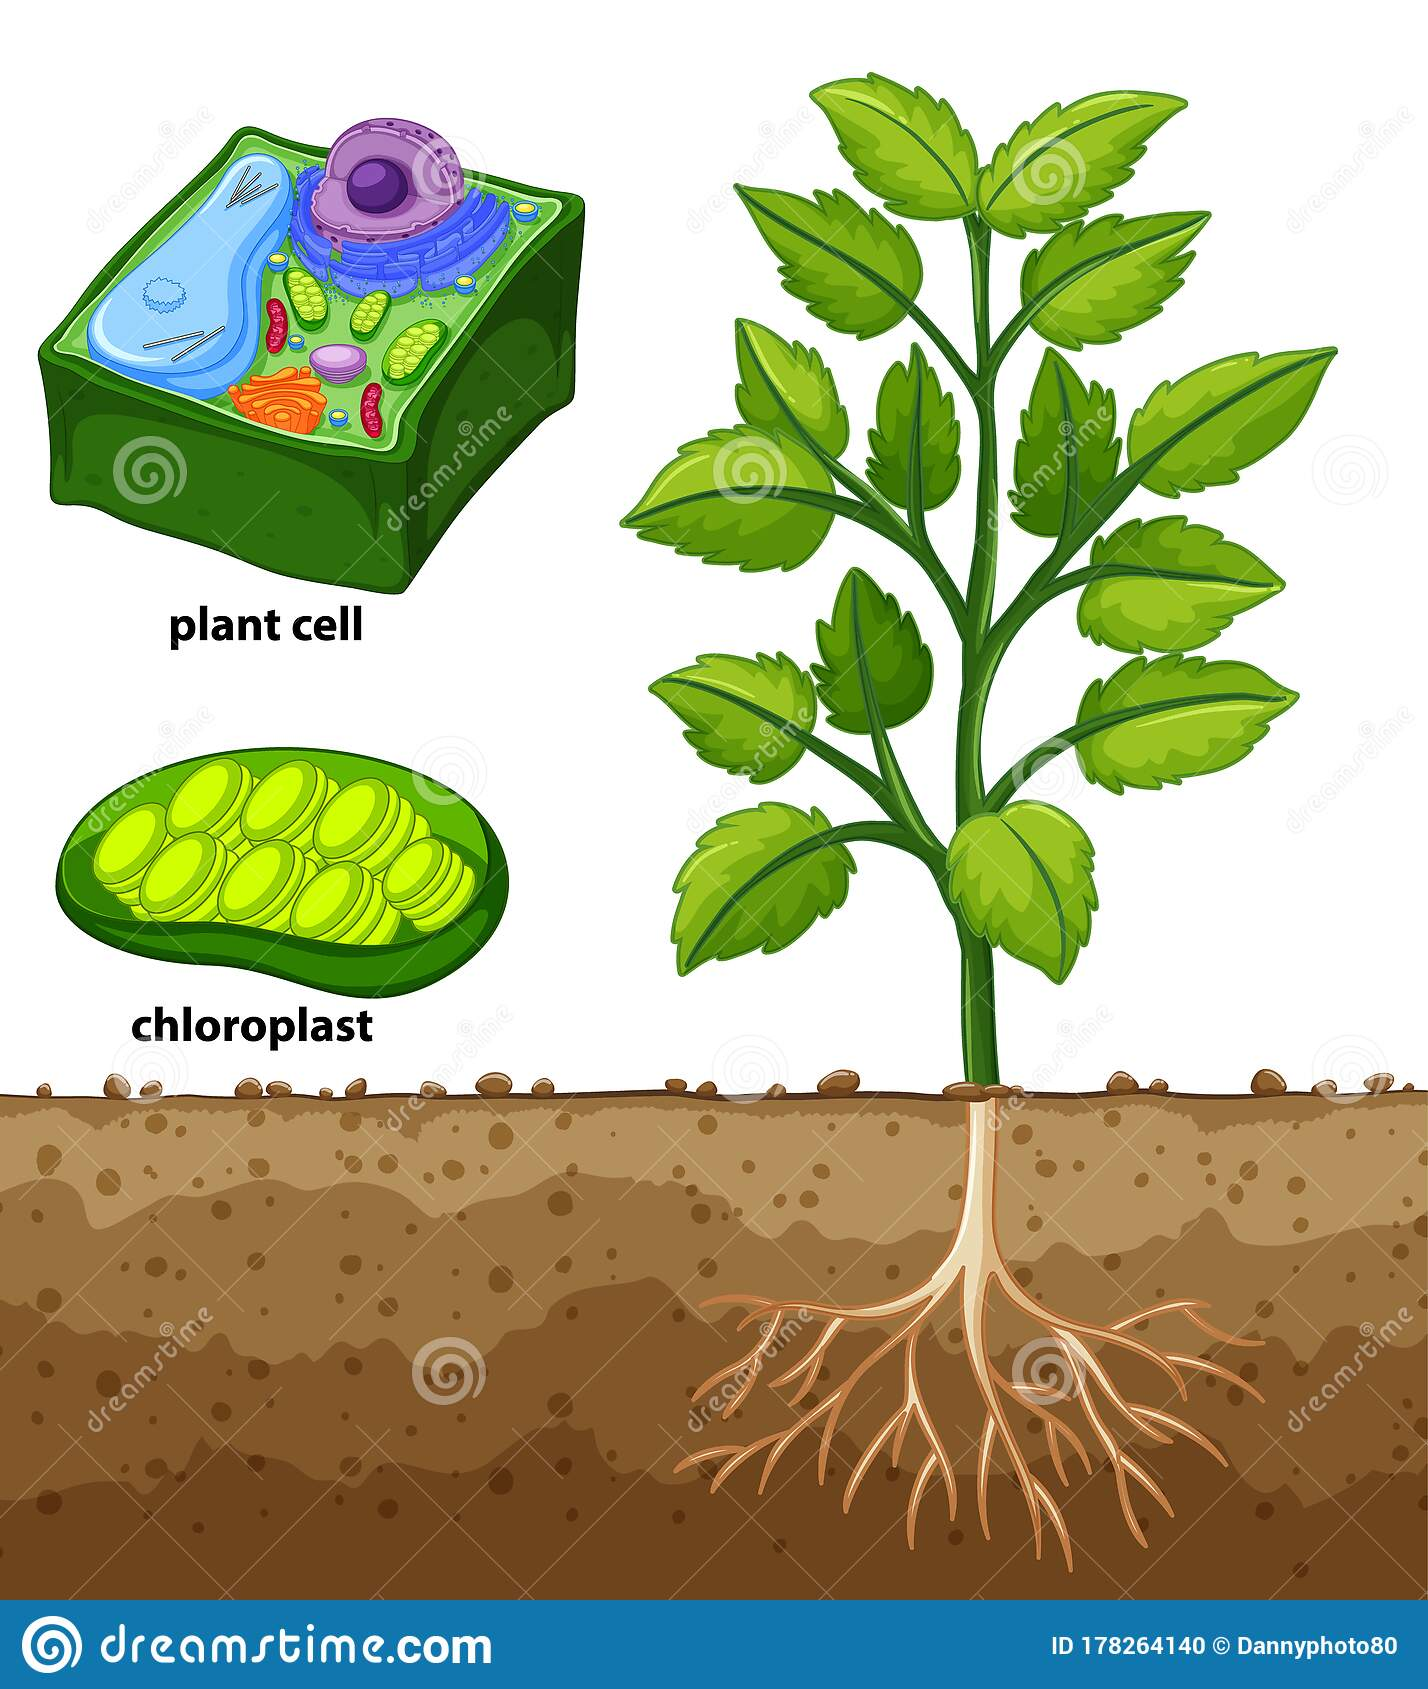 Diagram Showing Plant Cell And Tree In The Ground Stock Vector